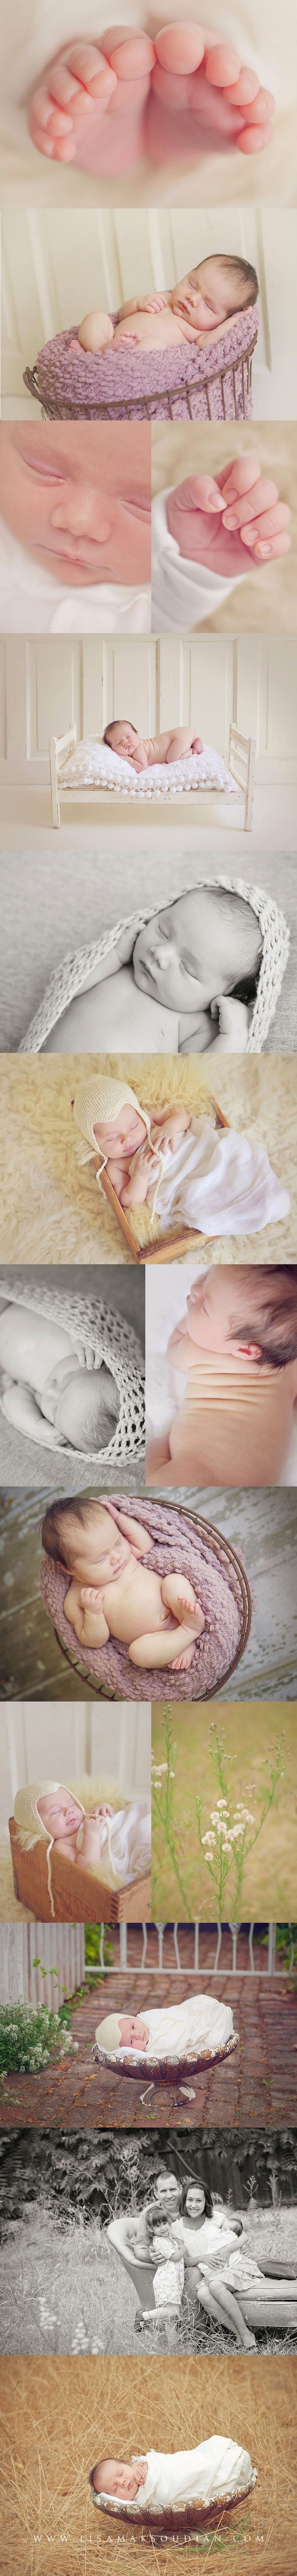 swoon worthy newborn session!